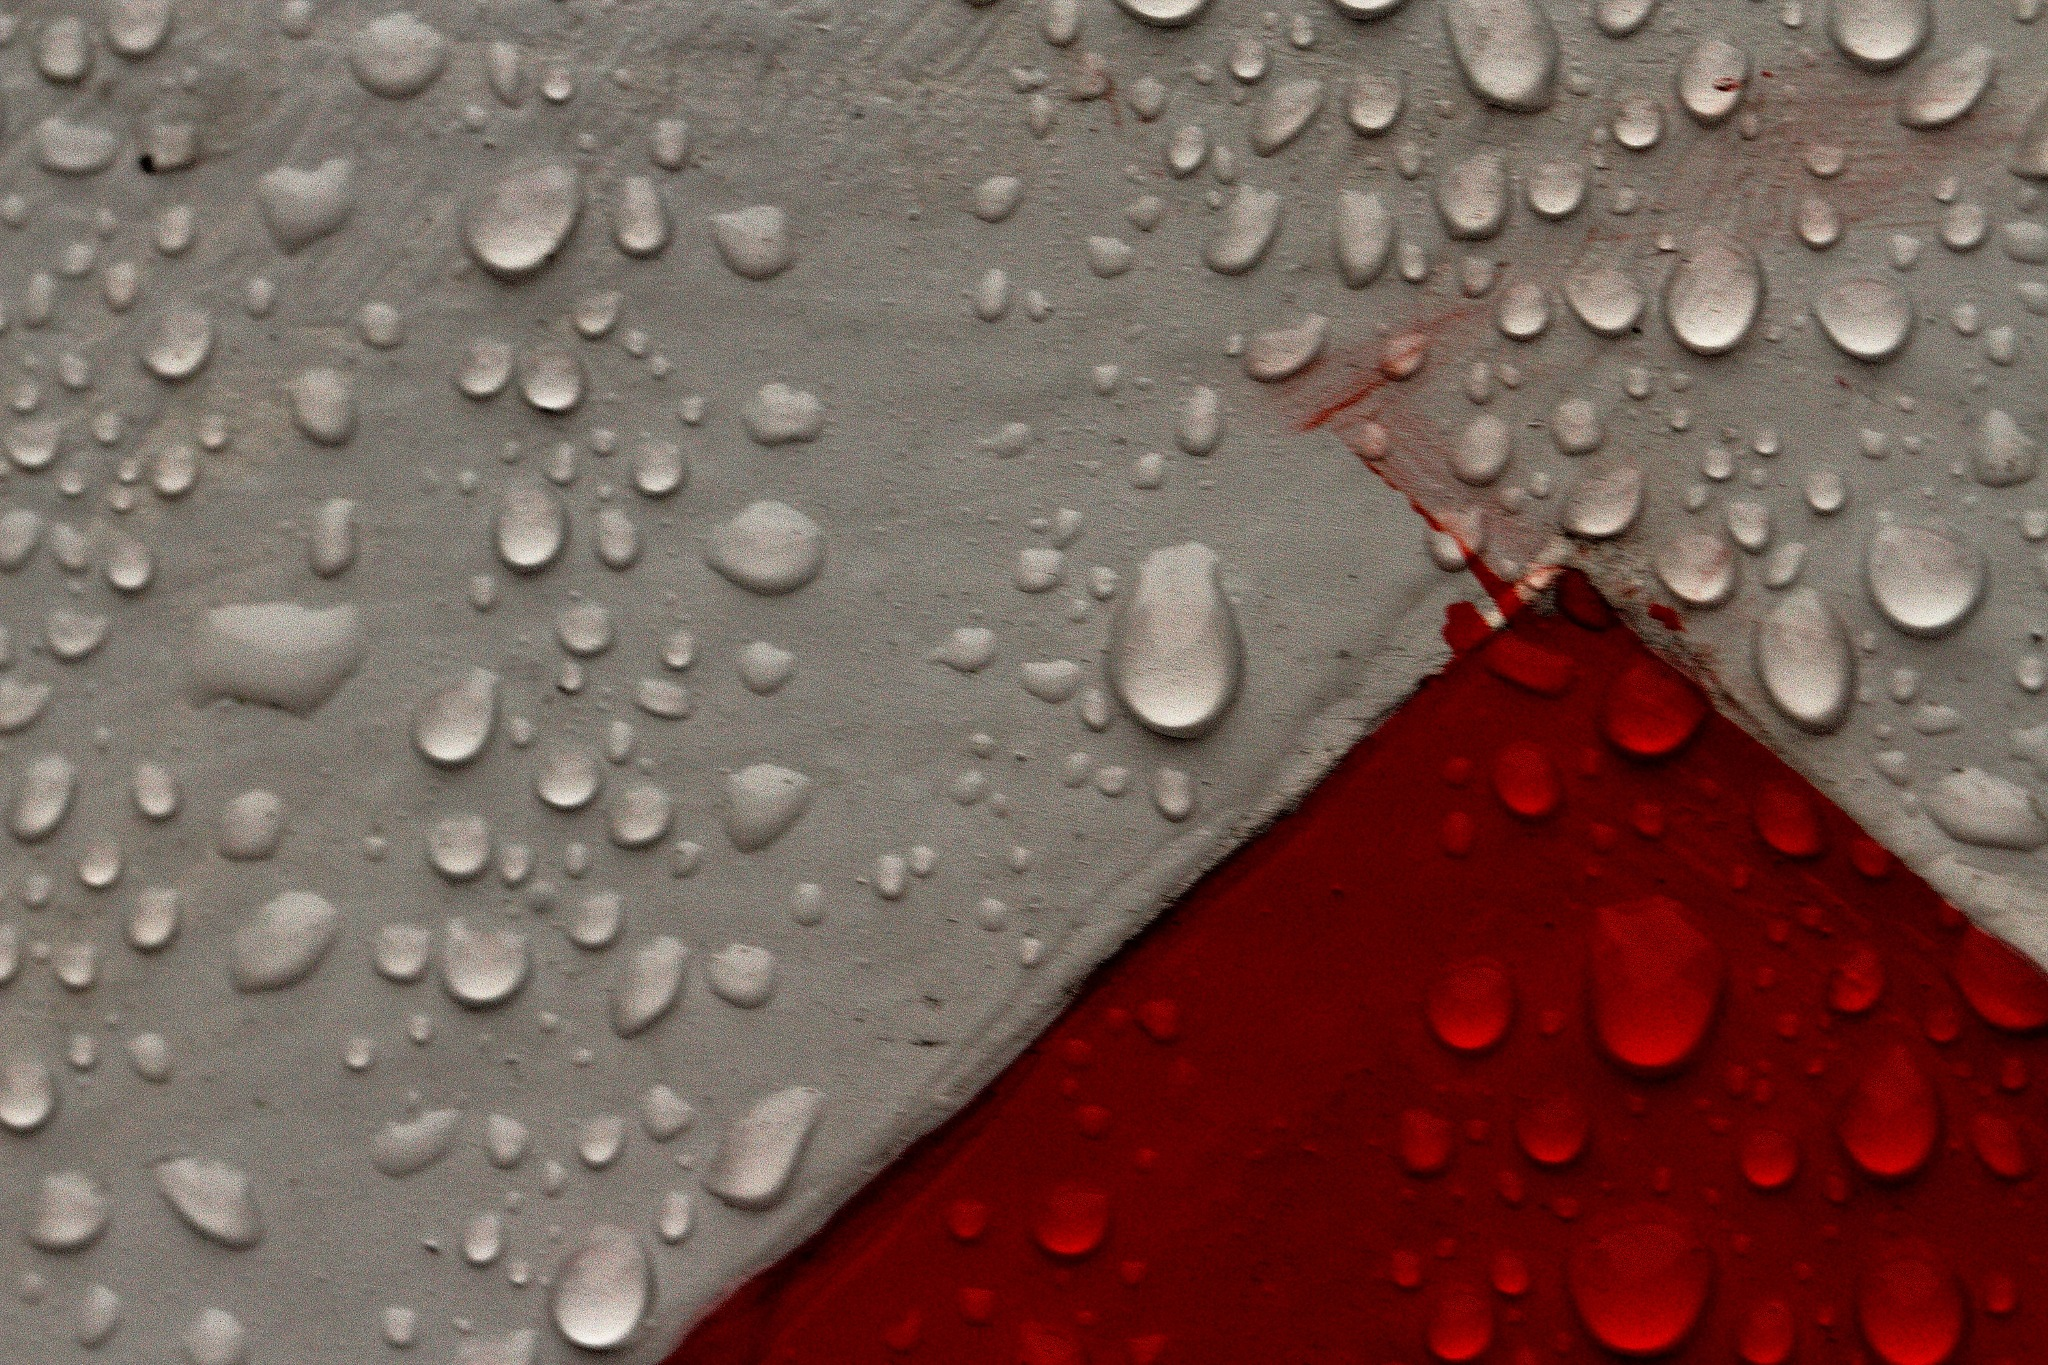 Red, White & Droplets by IncisiveFool